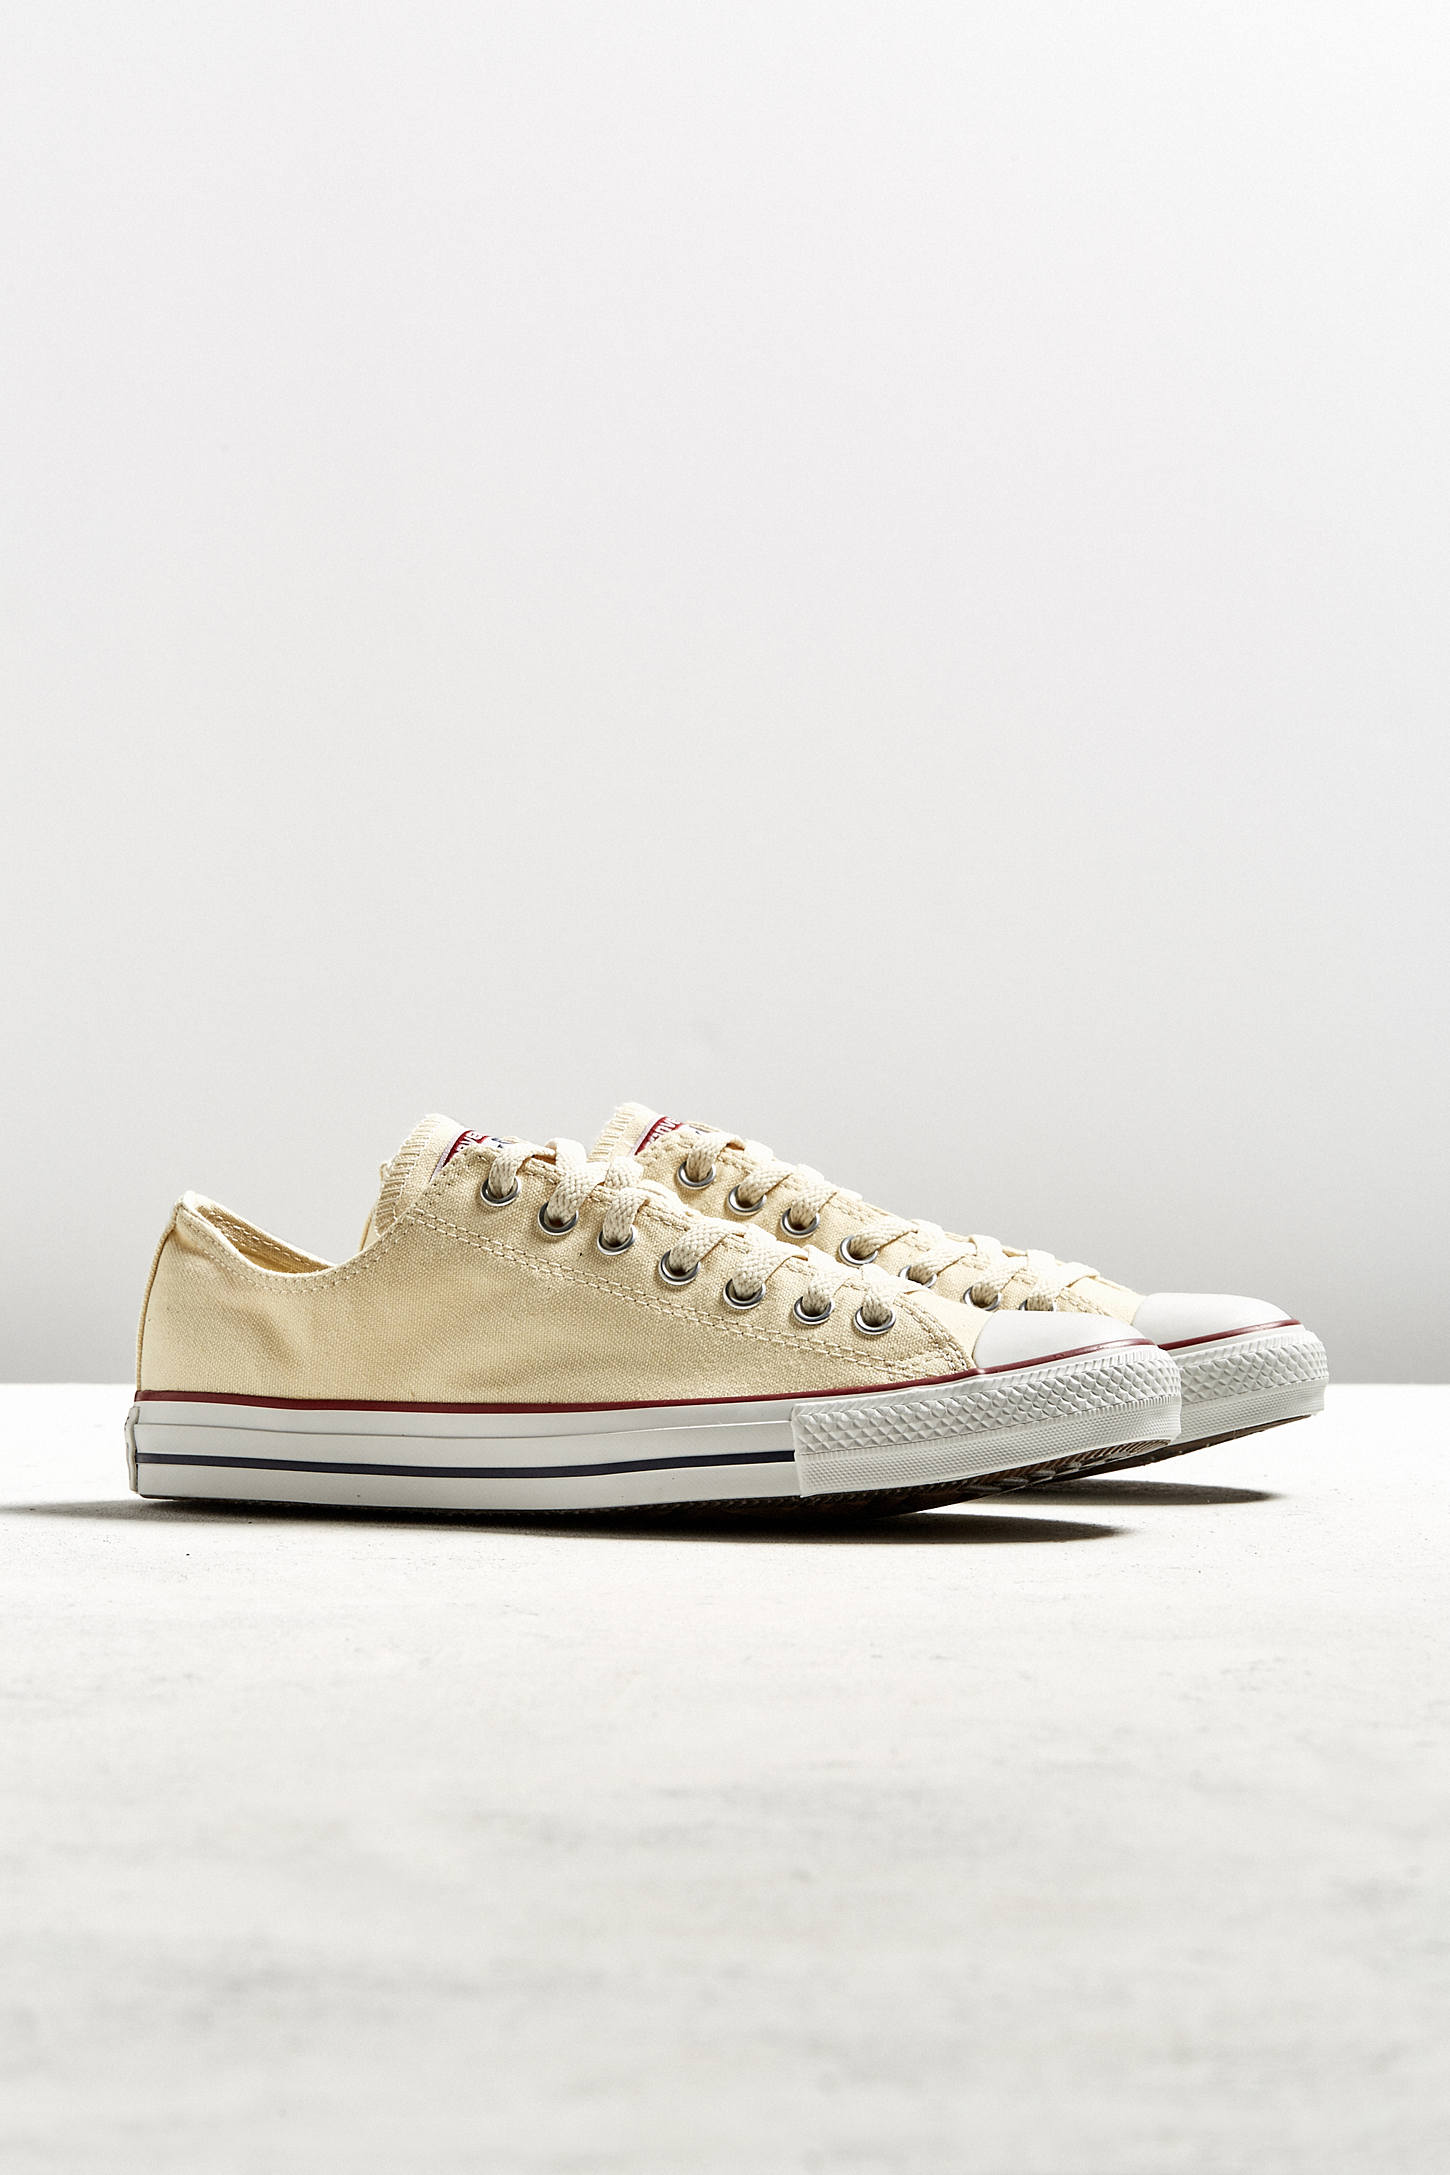 Slide View: 1: Converse Chuck Taylor All Star Low Top Sneaker